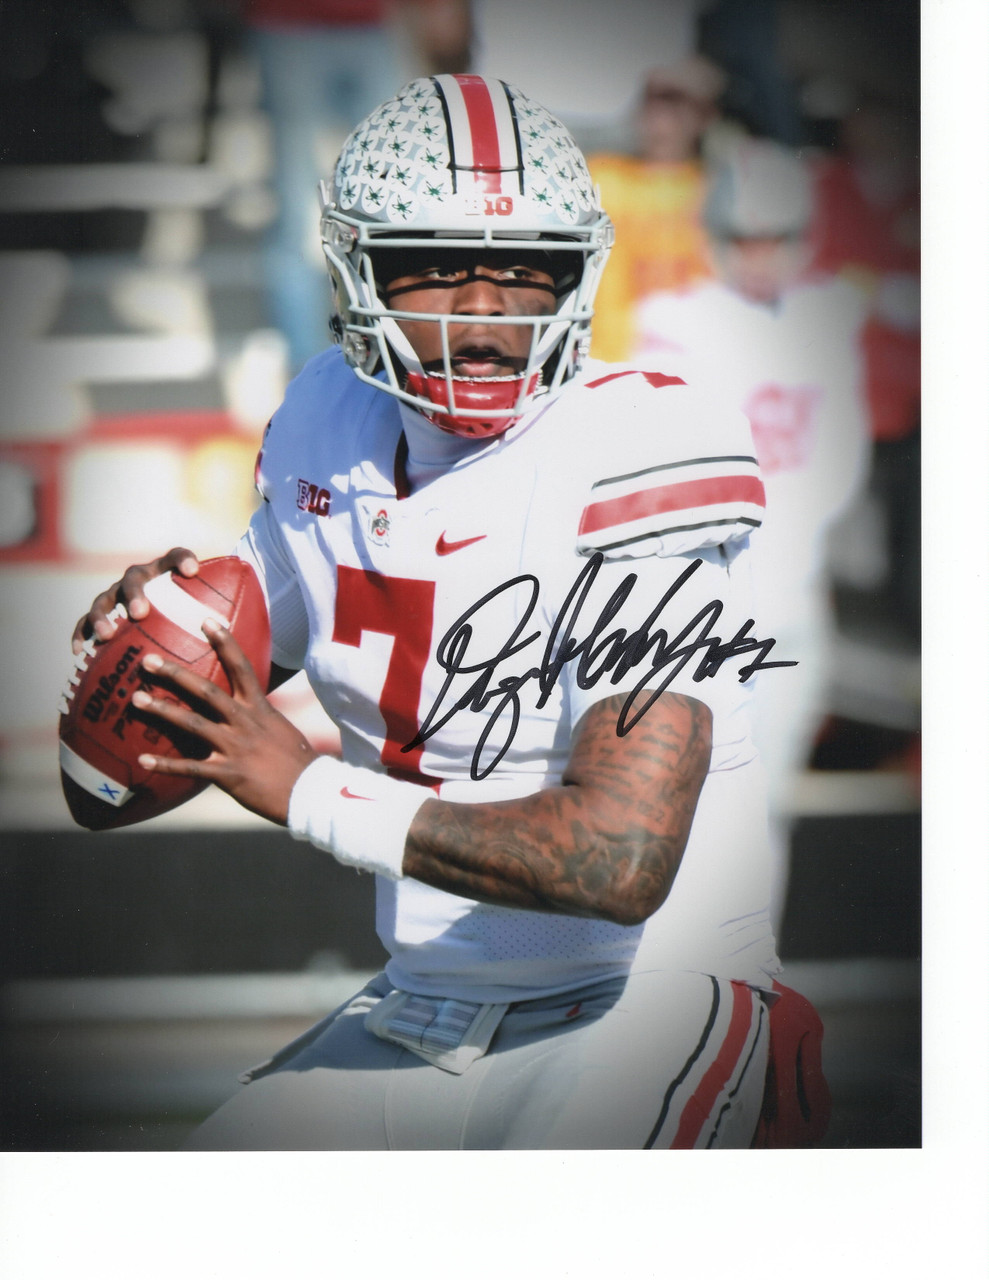 Dwayne Haskins Ohio State Buckeyes 8-1 8x10 Autographed Photo - Certified Authentic